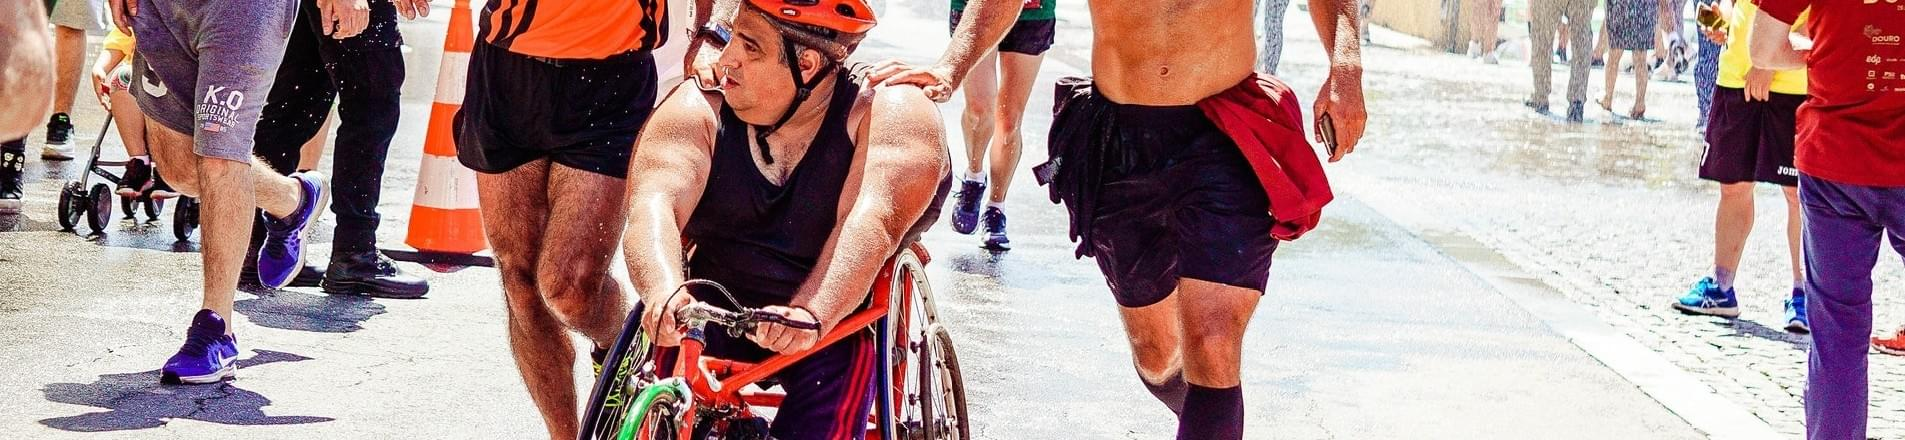 Bae Systems support wheelchair athletes